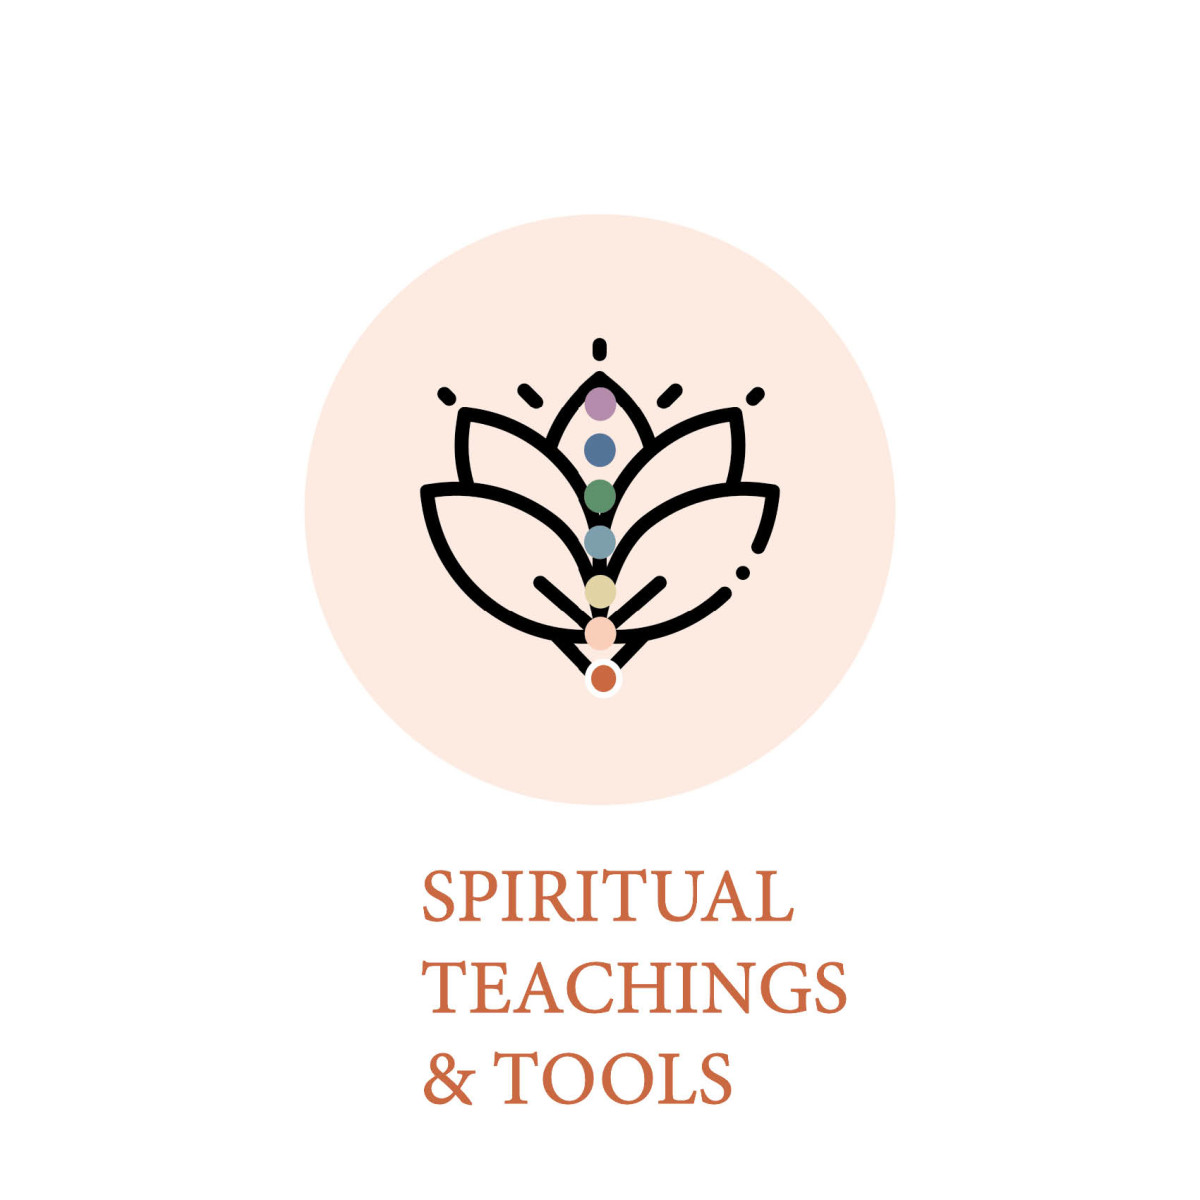 Spiritual teachings and tools V2